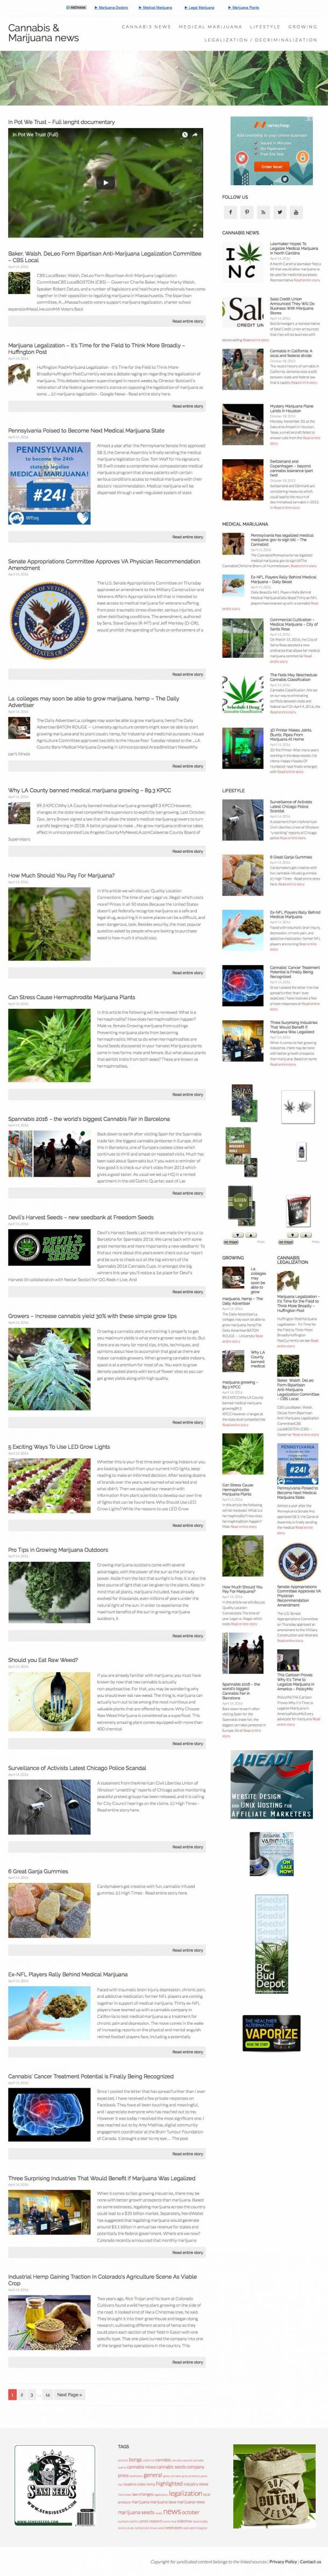 Cannabis_&_Marijuana_news_–_Coverage_of_medical_marijuana_and_cannabis_news,_insights,_lifestyle,_laws,_growing_guides_and_more!